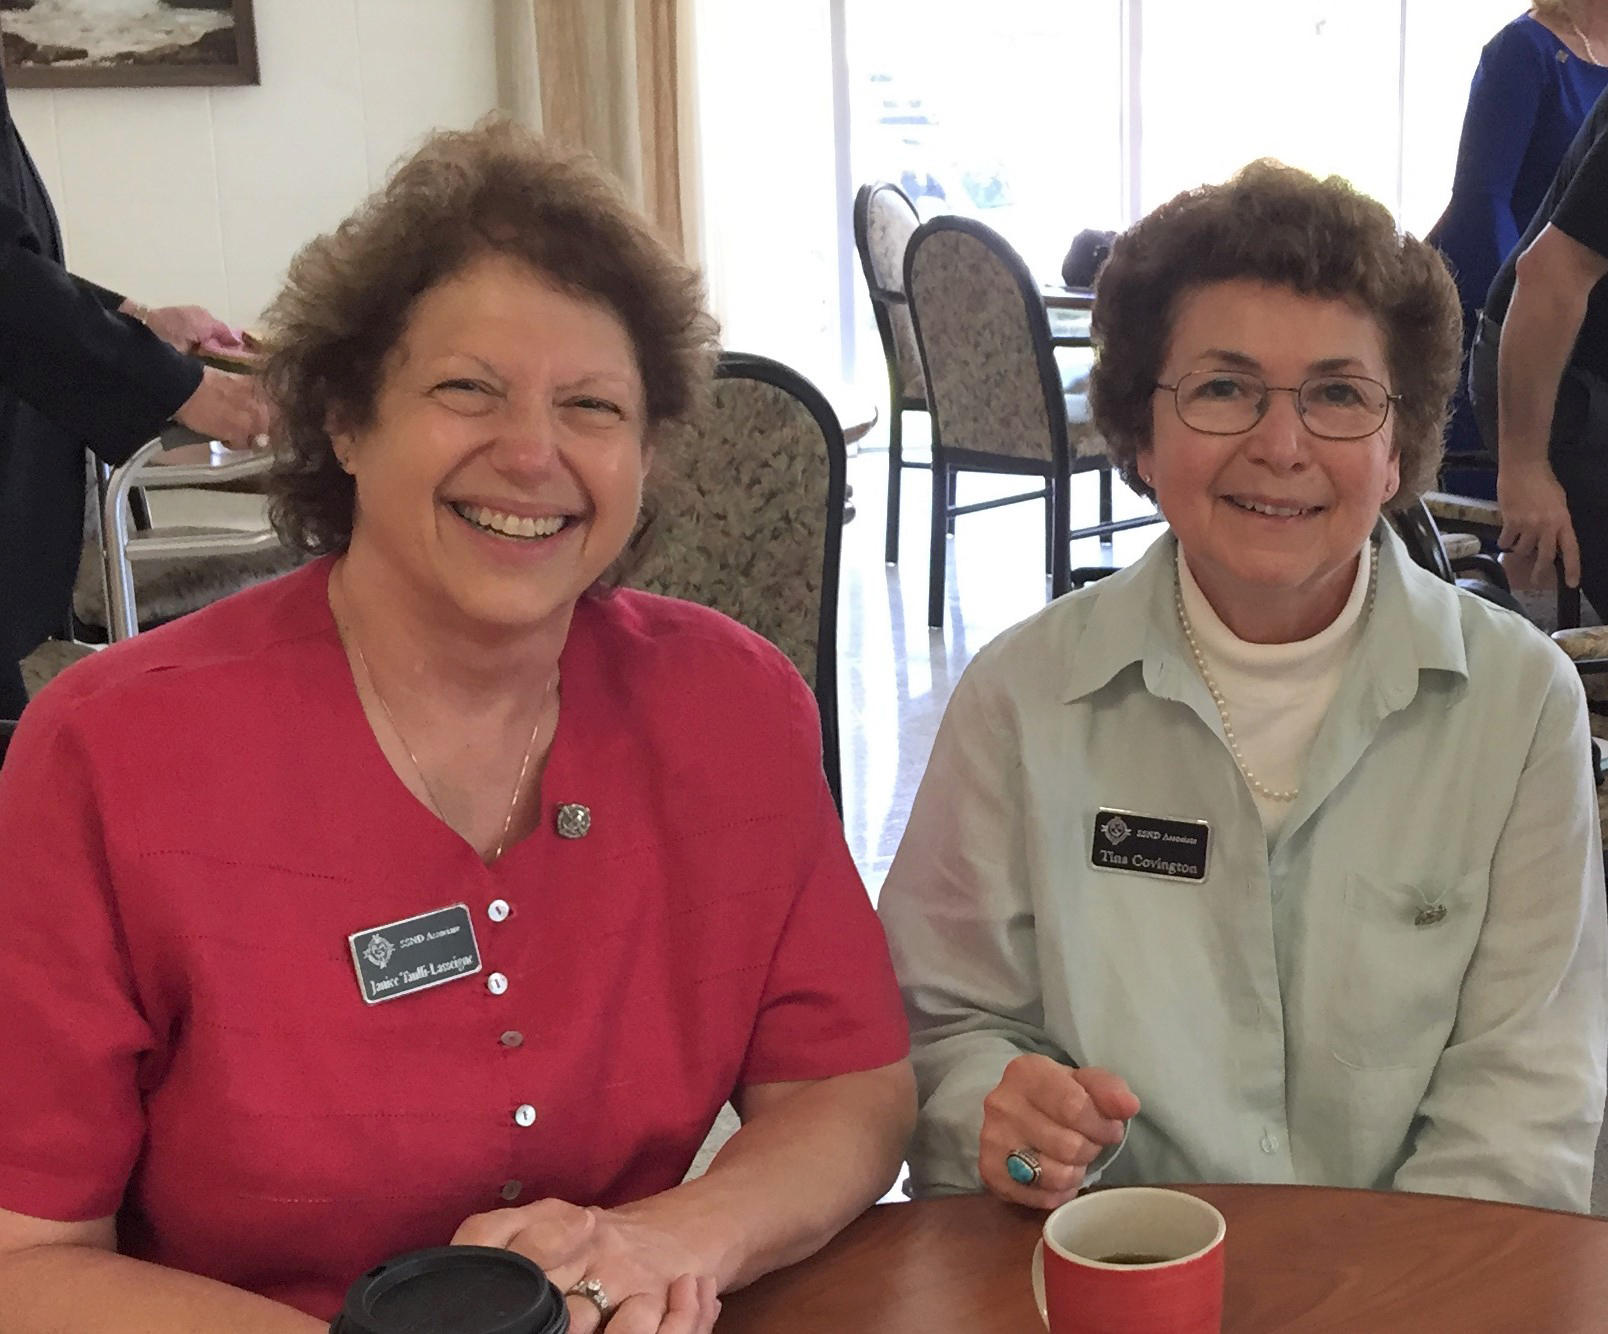 Associates Janice Taulli-Lasseigne and Tina Covington, along with Sister Helen Roper, after the associates made their initial covenant on May 6, 2018. From left to right: Janice Taulli-Lasseigne, Tina Covington and Sister Helen Roper. Photo by Anne Carey.